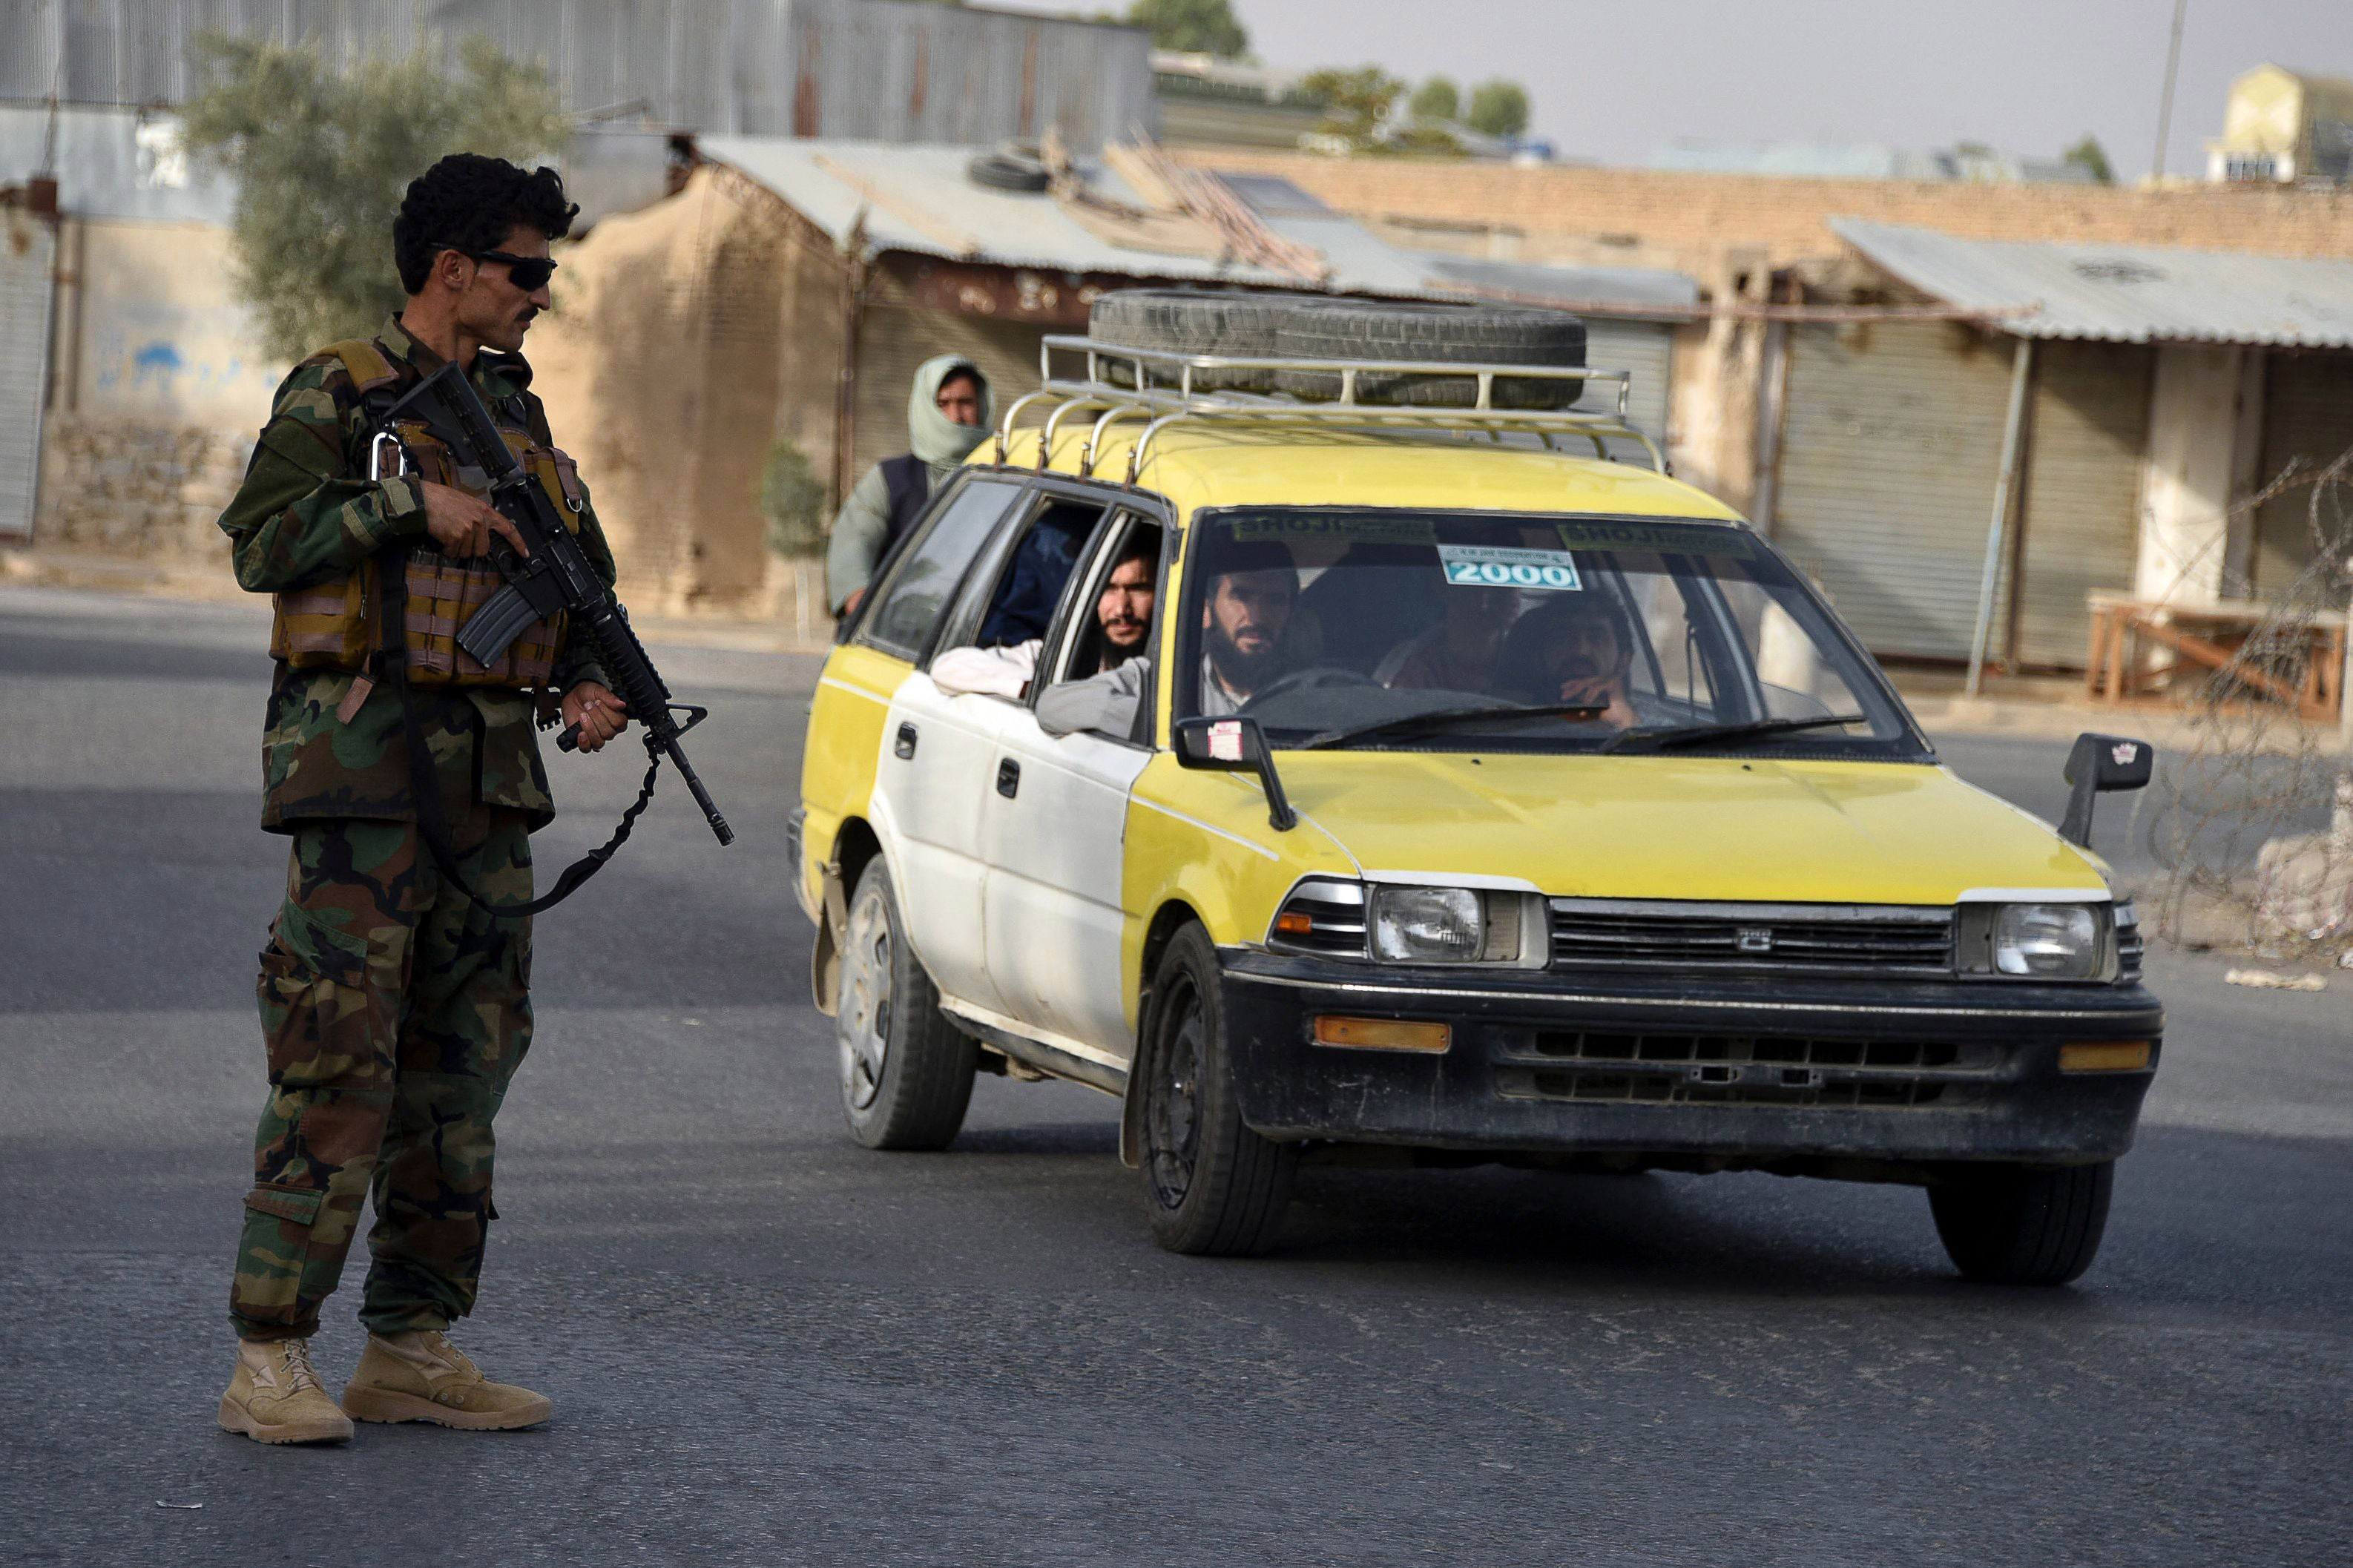 Afghanistan: Advancing Taliban Execute Detainees